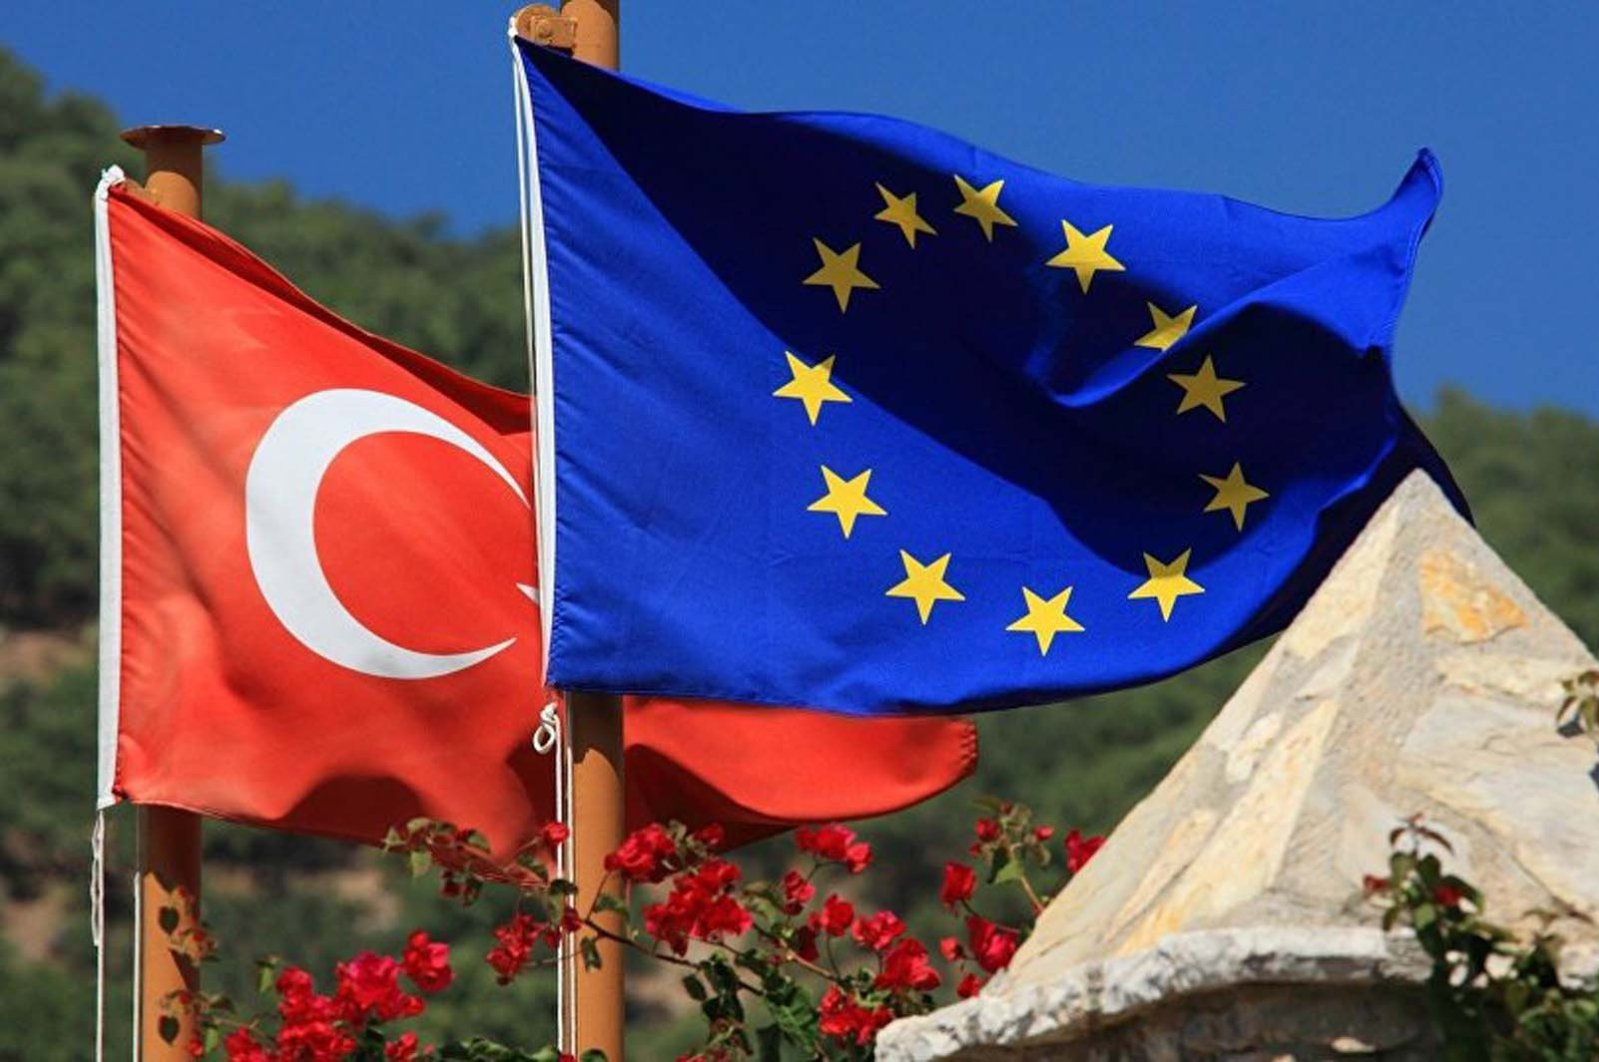 Turkey has been preparing a new initiative to accelerate the accession process to the EU.